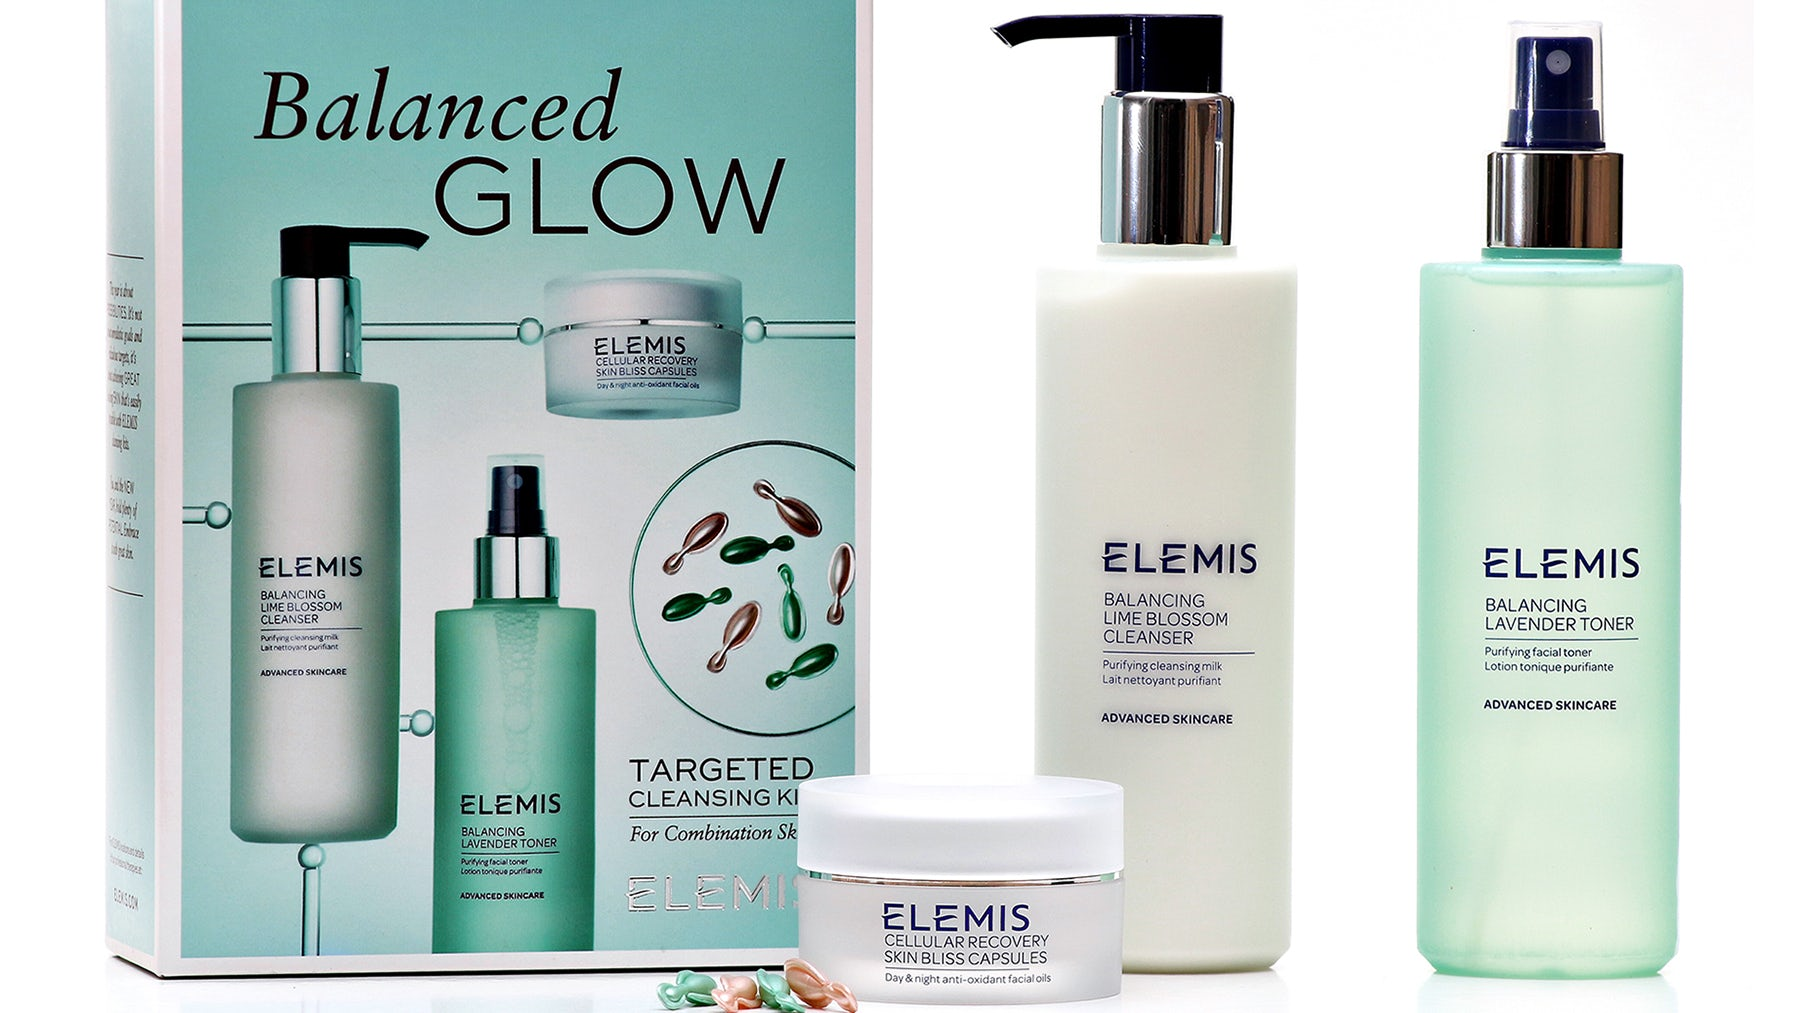 Elemis products | Source: Shutterstock